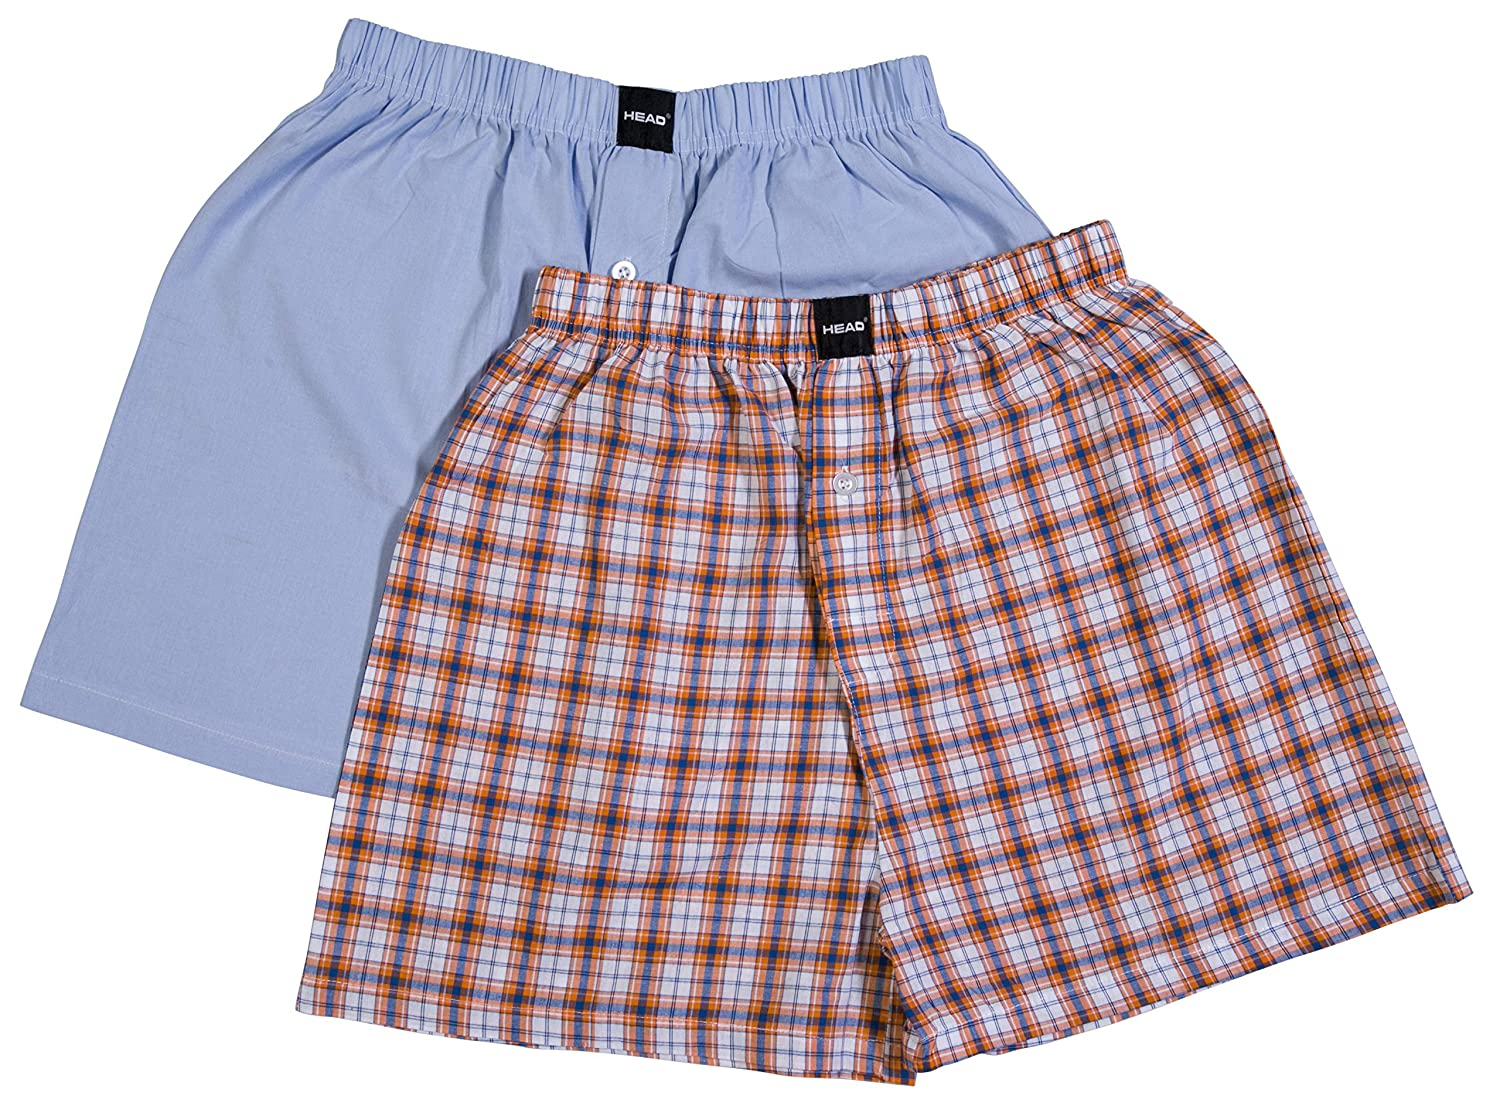 Blue//Orange Checks Head Mens 2-Piece Woven Cotton Boxers S